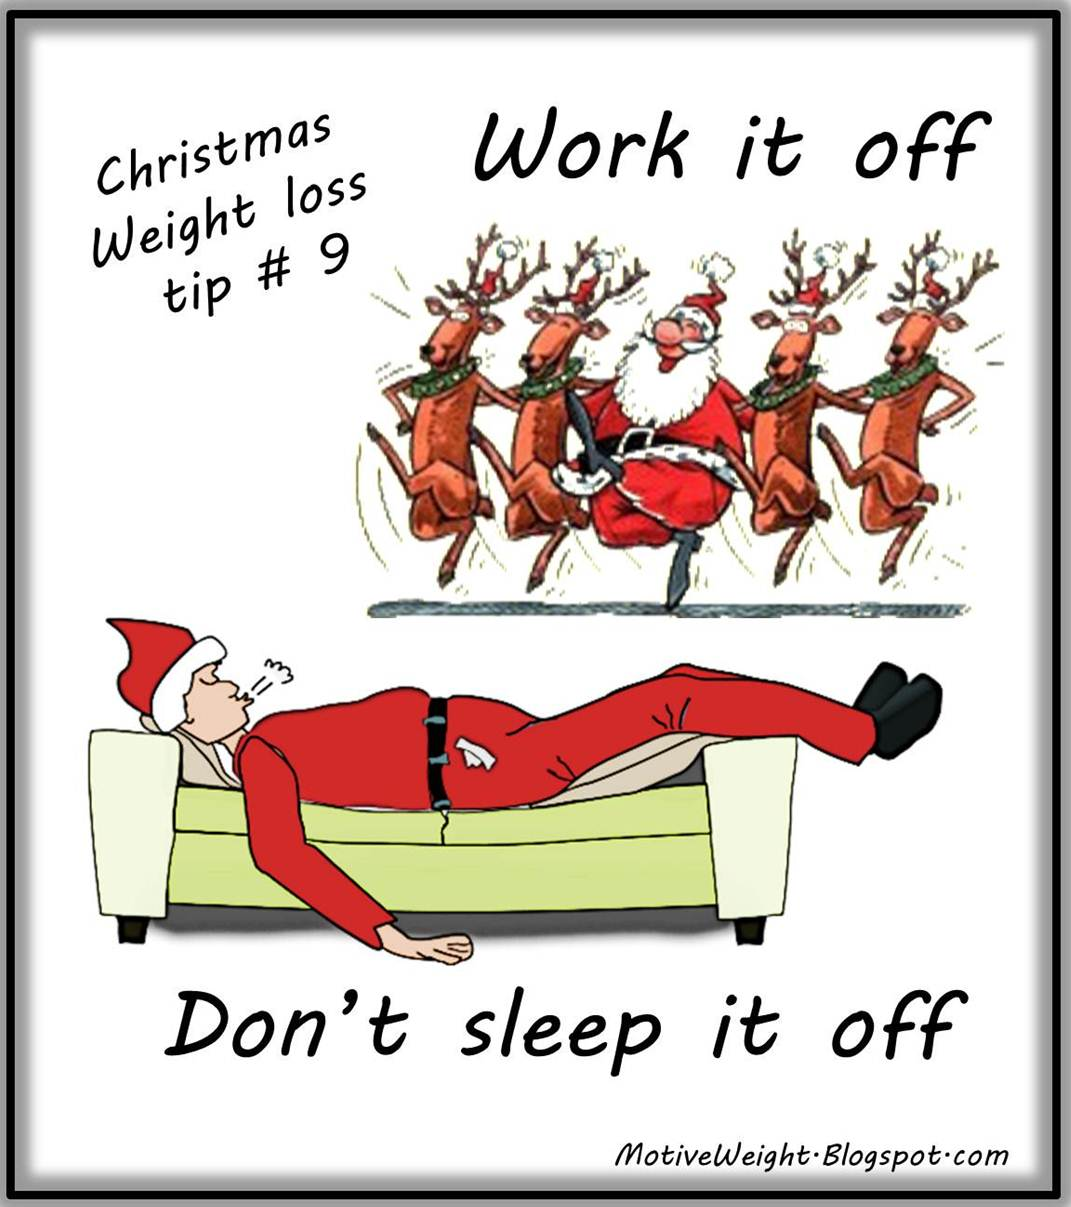 Holiday Weight Loss Tips Quotes